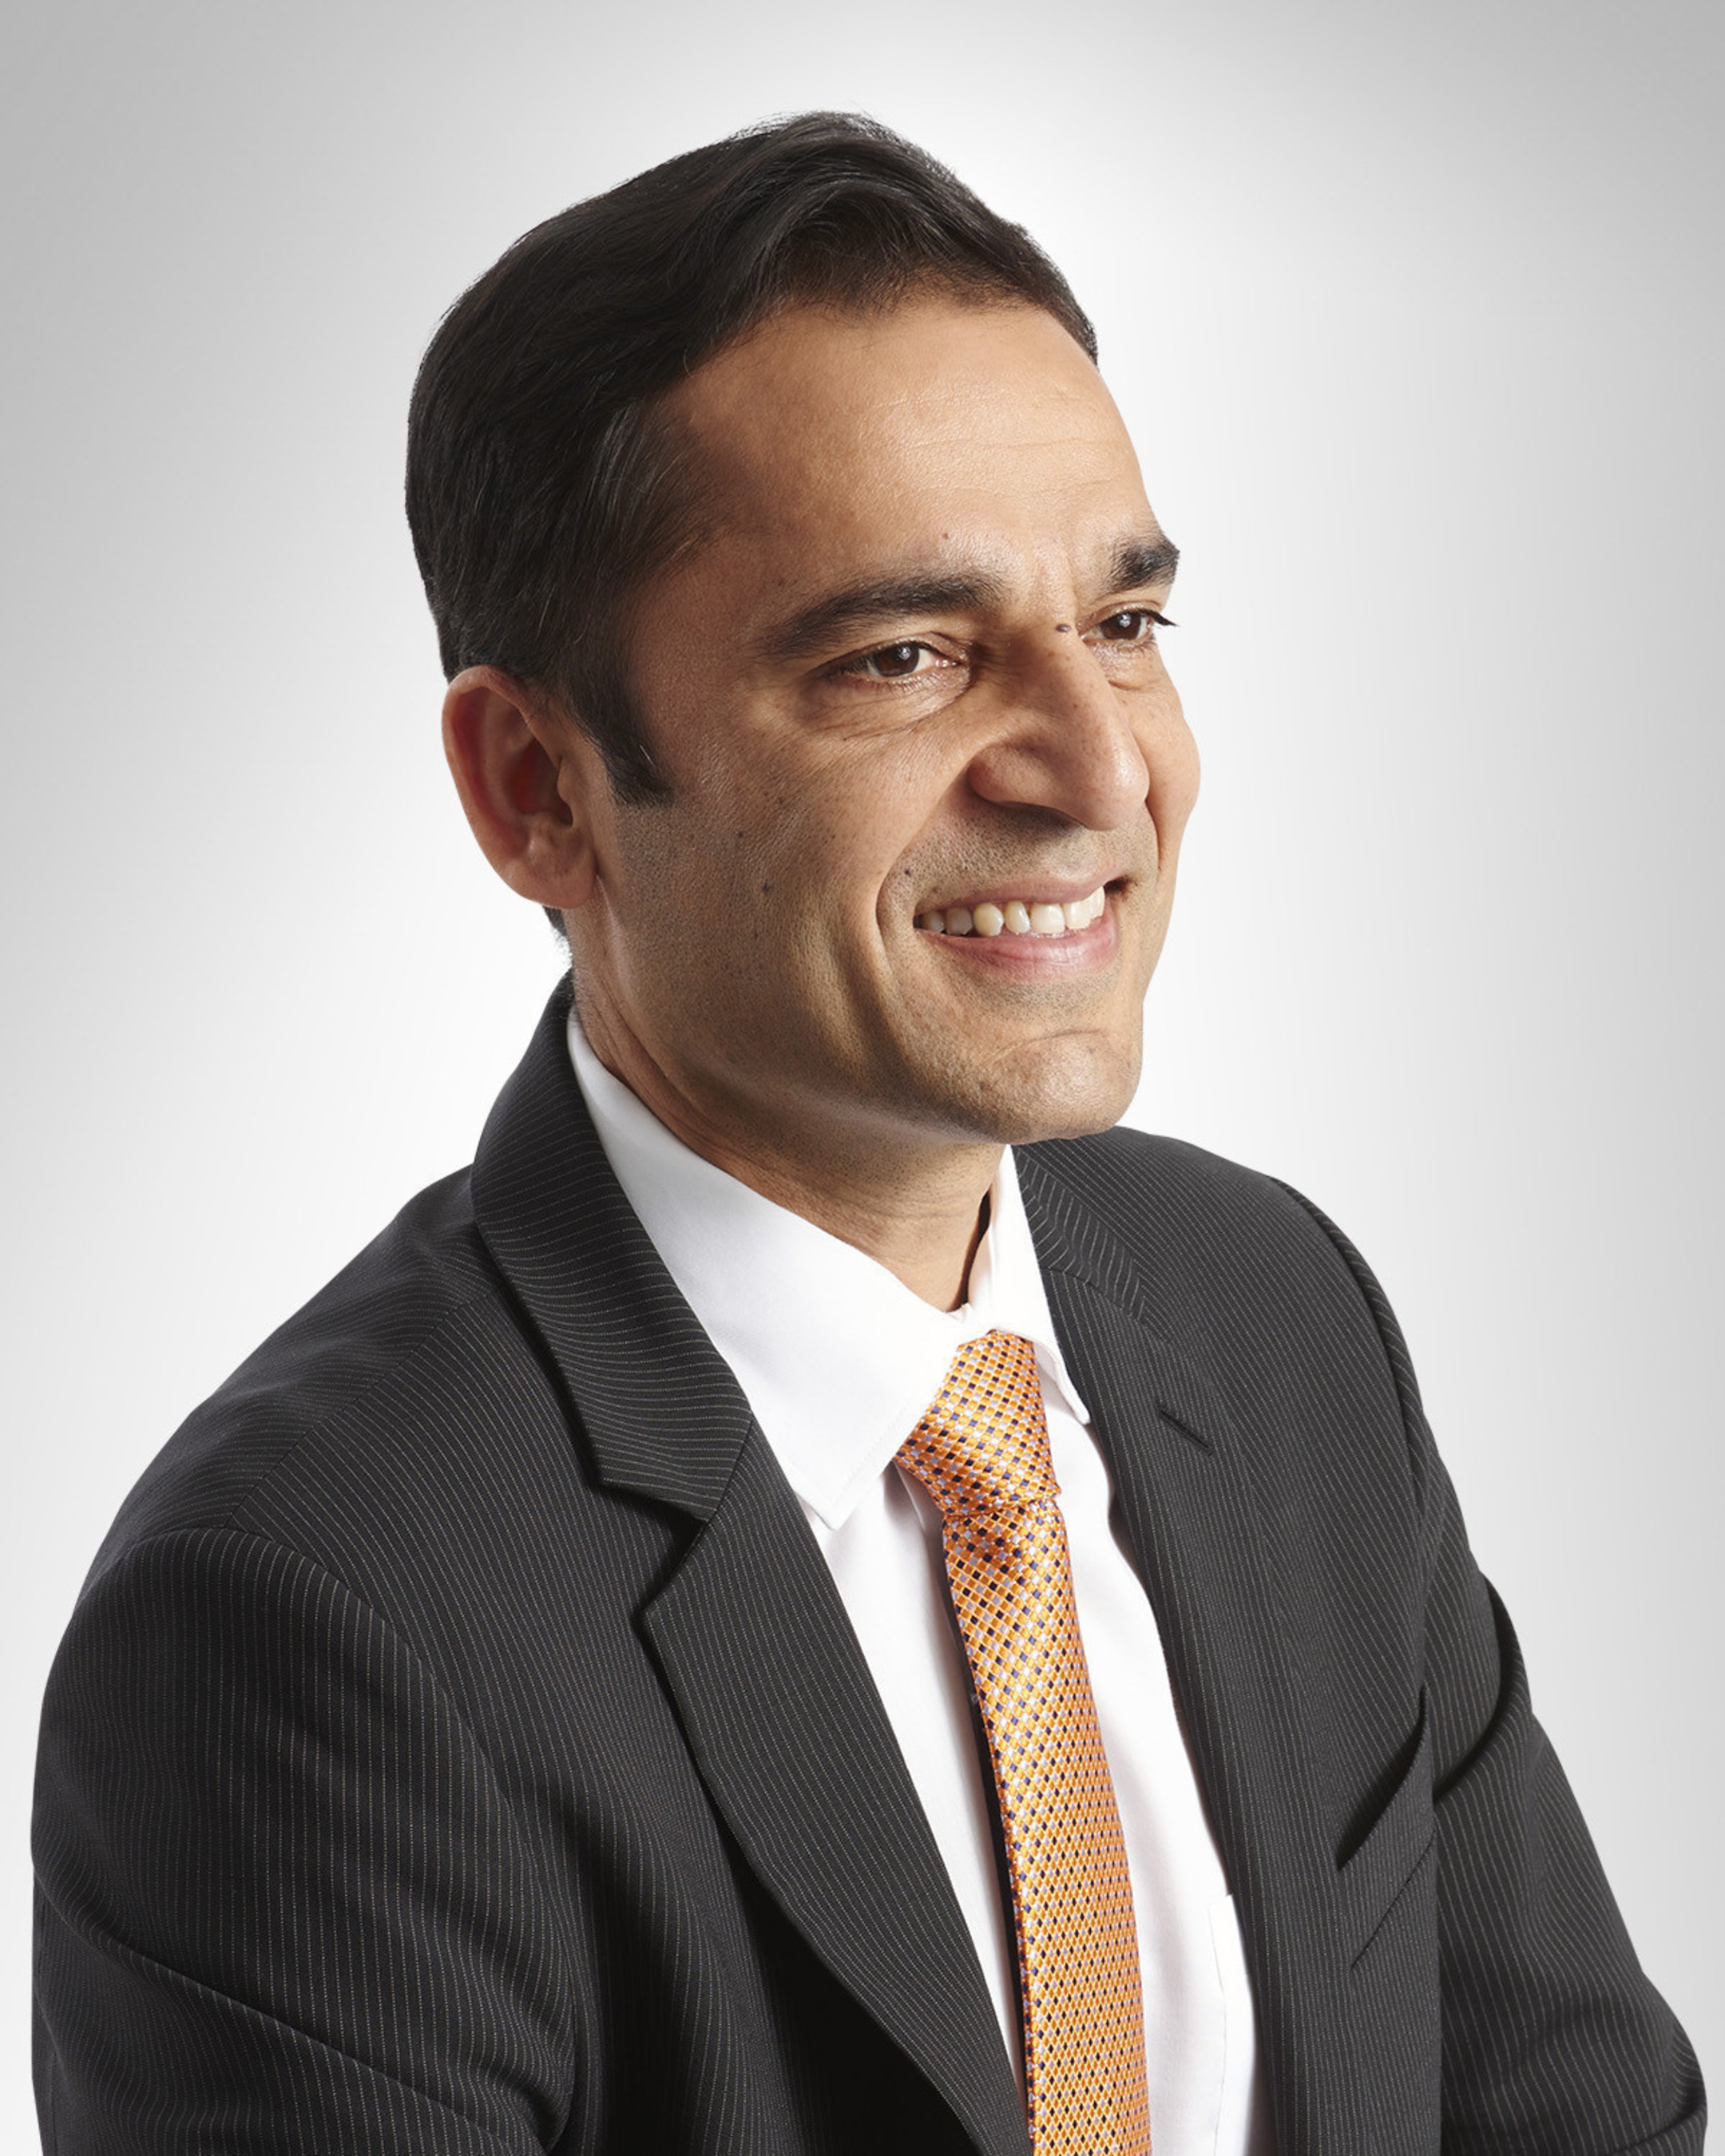 Udit Batra, Member of the Merck Executive Board and CEO of the Life Science Business of Merck, has been named CPhI Pharma's CEO of the Year.